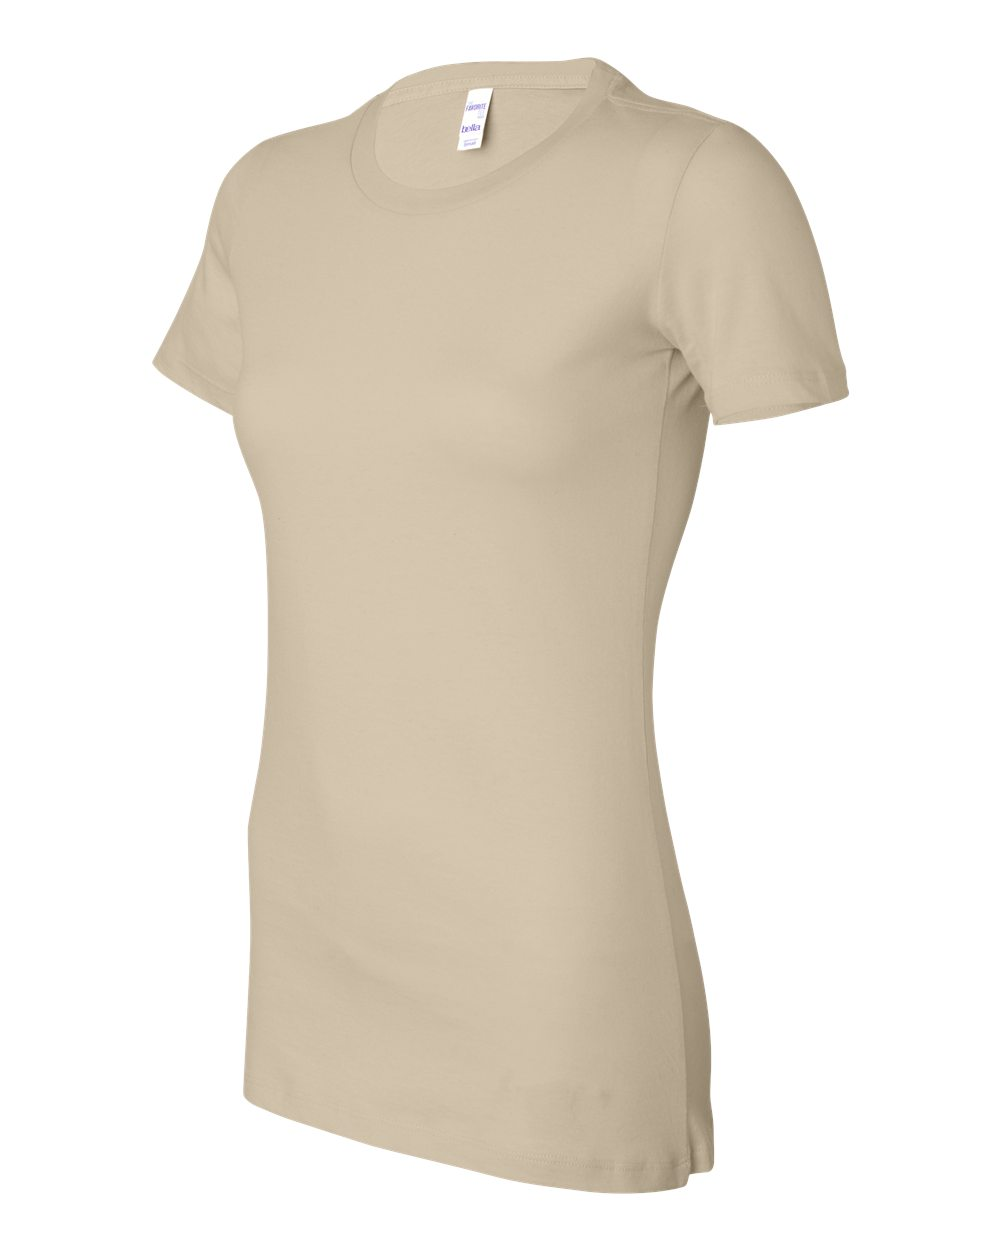 Bella-Canvas-Womens-The-Favorite-T-Shirt-6004-Size-S-2XL thumbnail 144